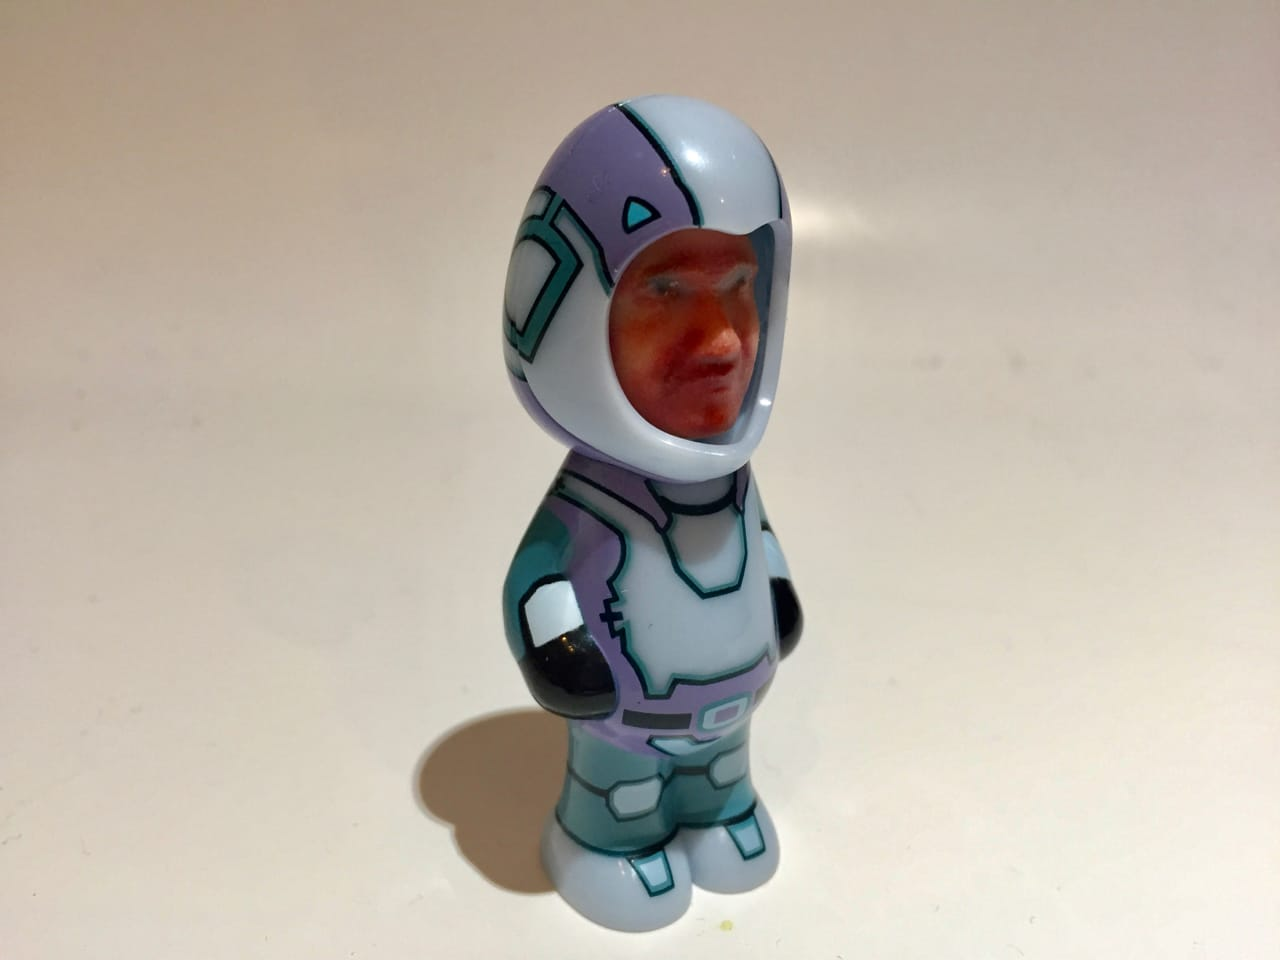 A personalized 3D printed figurine